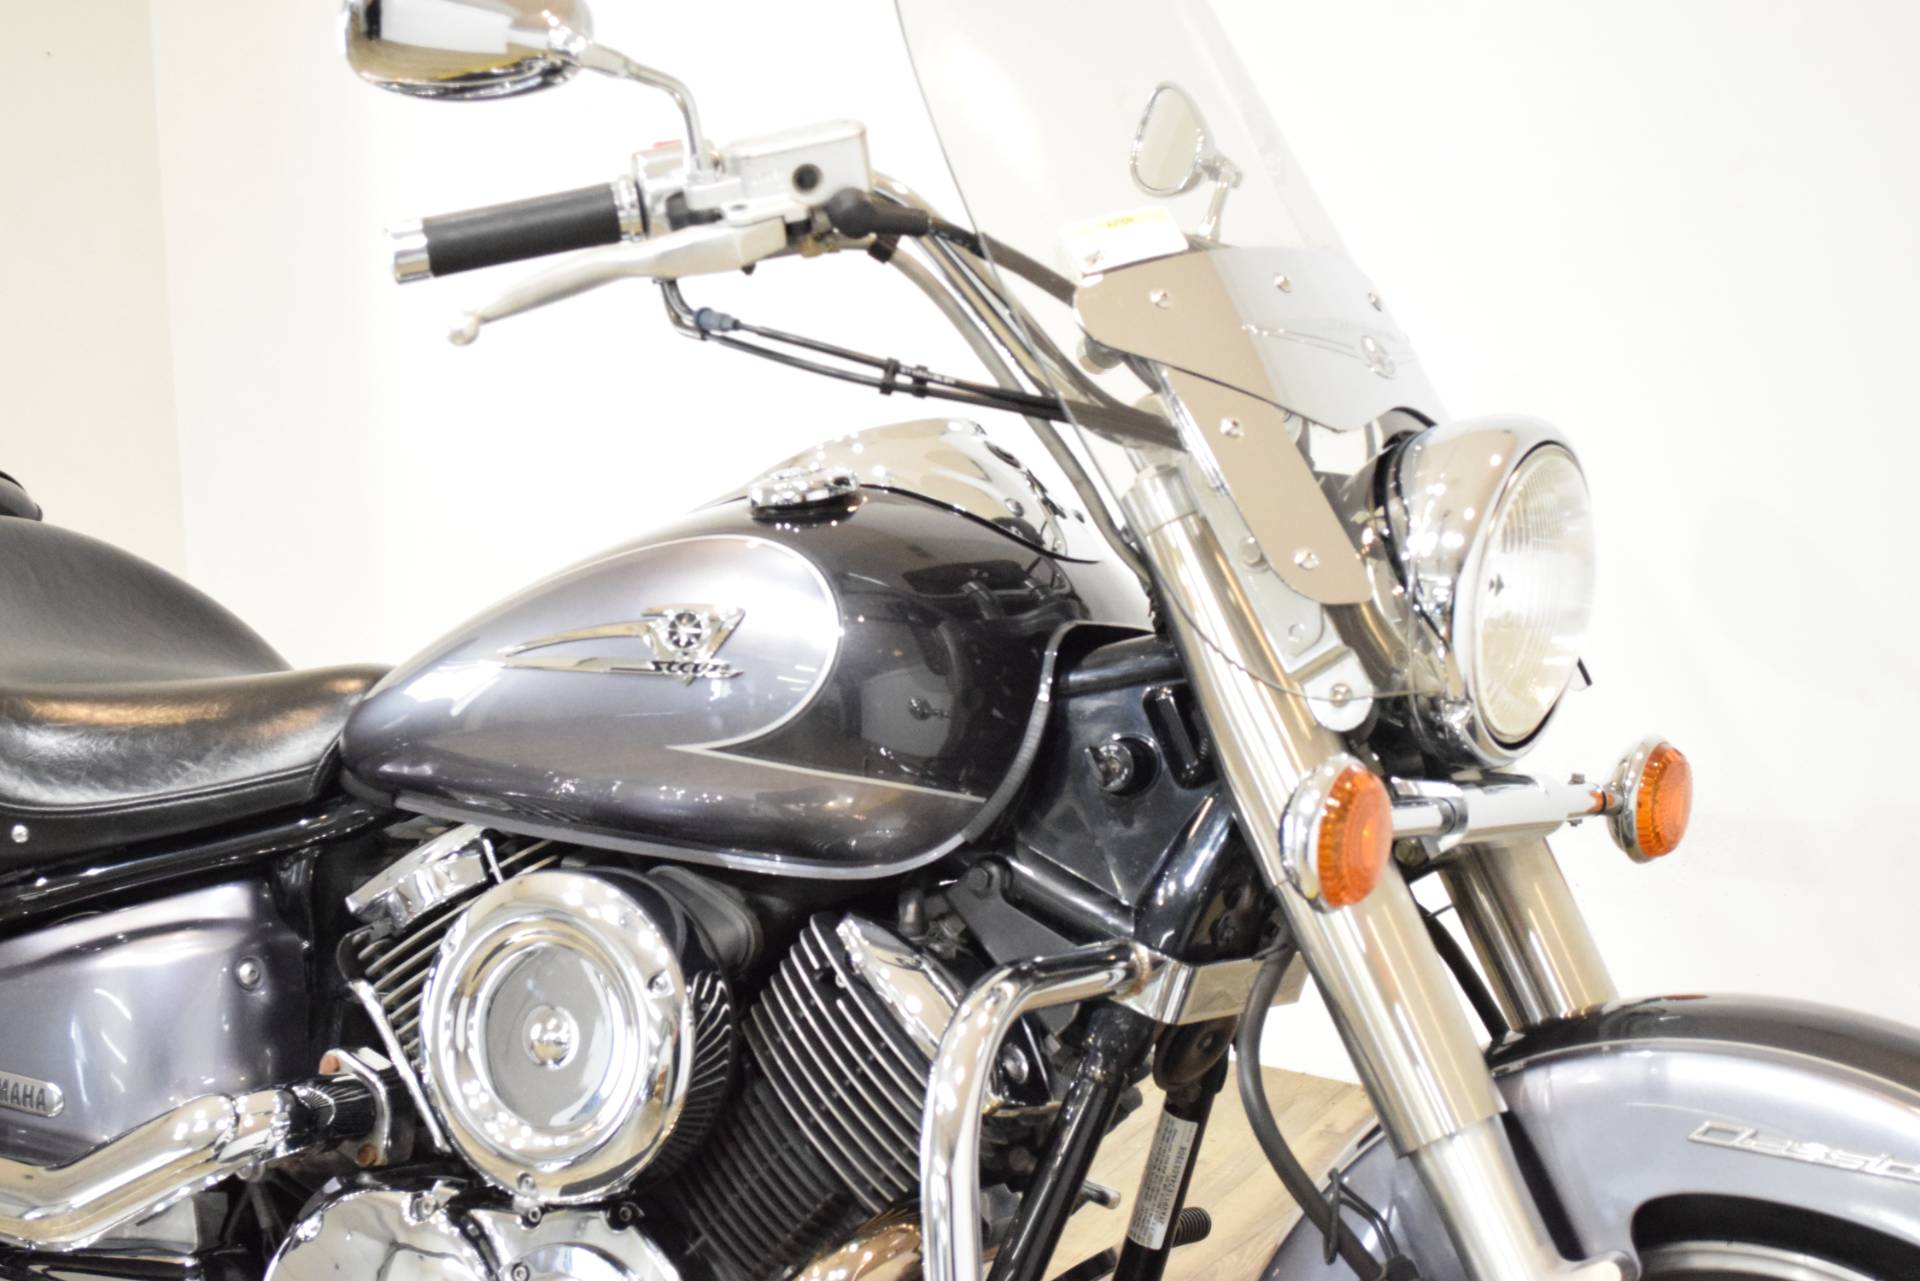 2004 Yamaha V Star 1100 Silverado® in Wauconda, Illinois